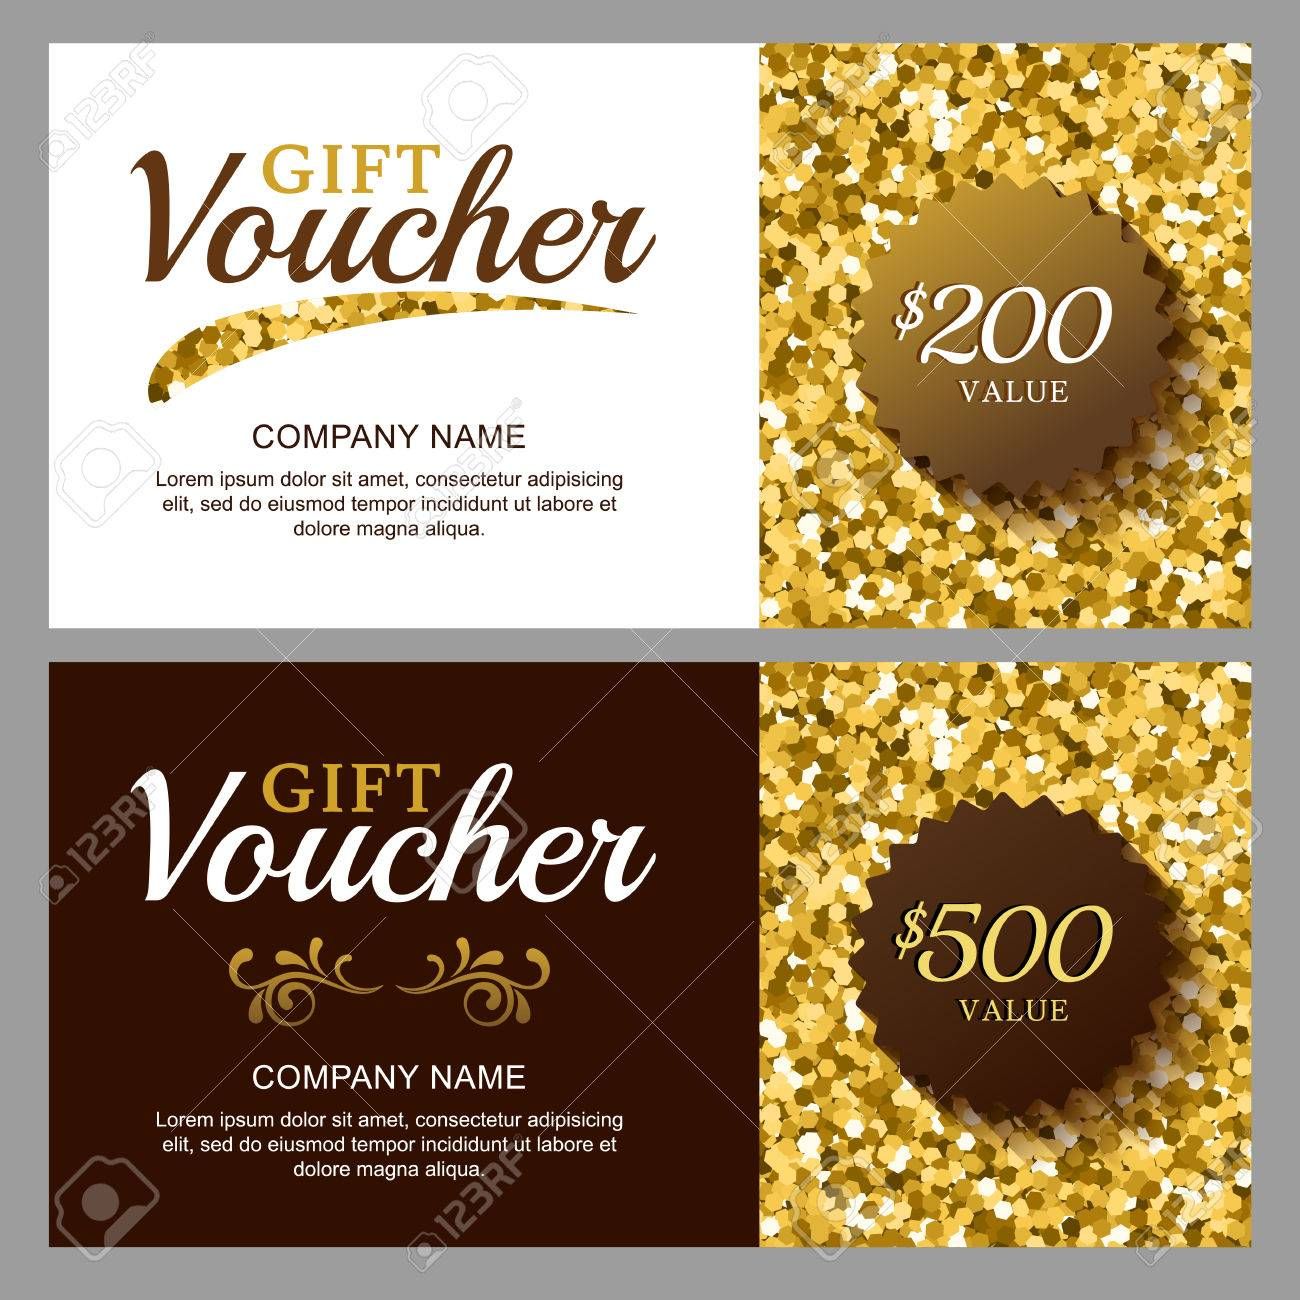 Vector gift voucher with golden sparkling pattern business card business card template abstract luxury glow background concept for boutique fashion shop accessorize jewelry flyer banner design fbccfo Image collections